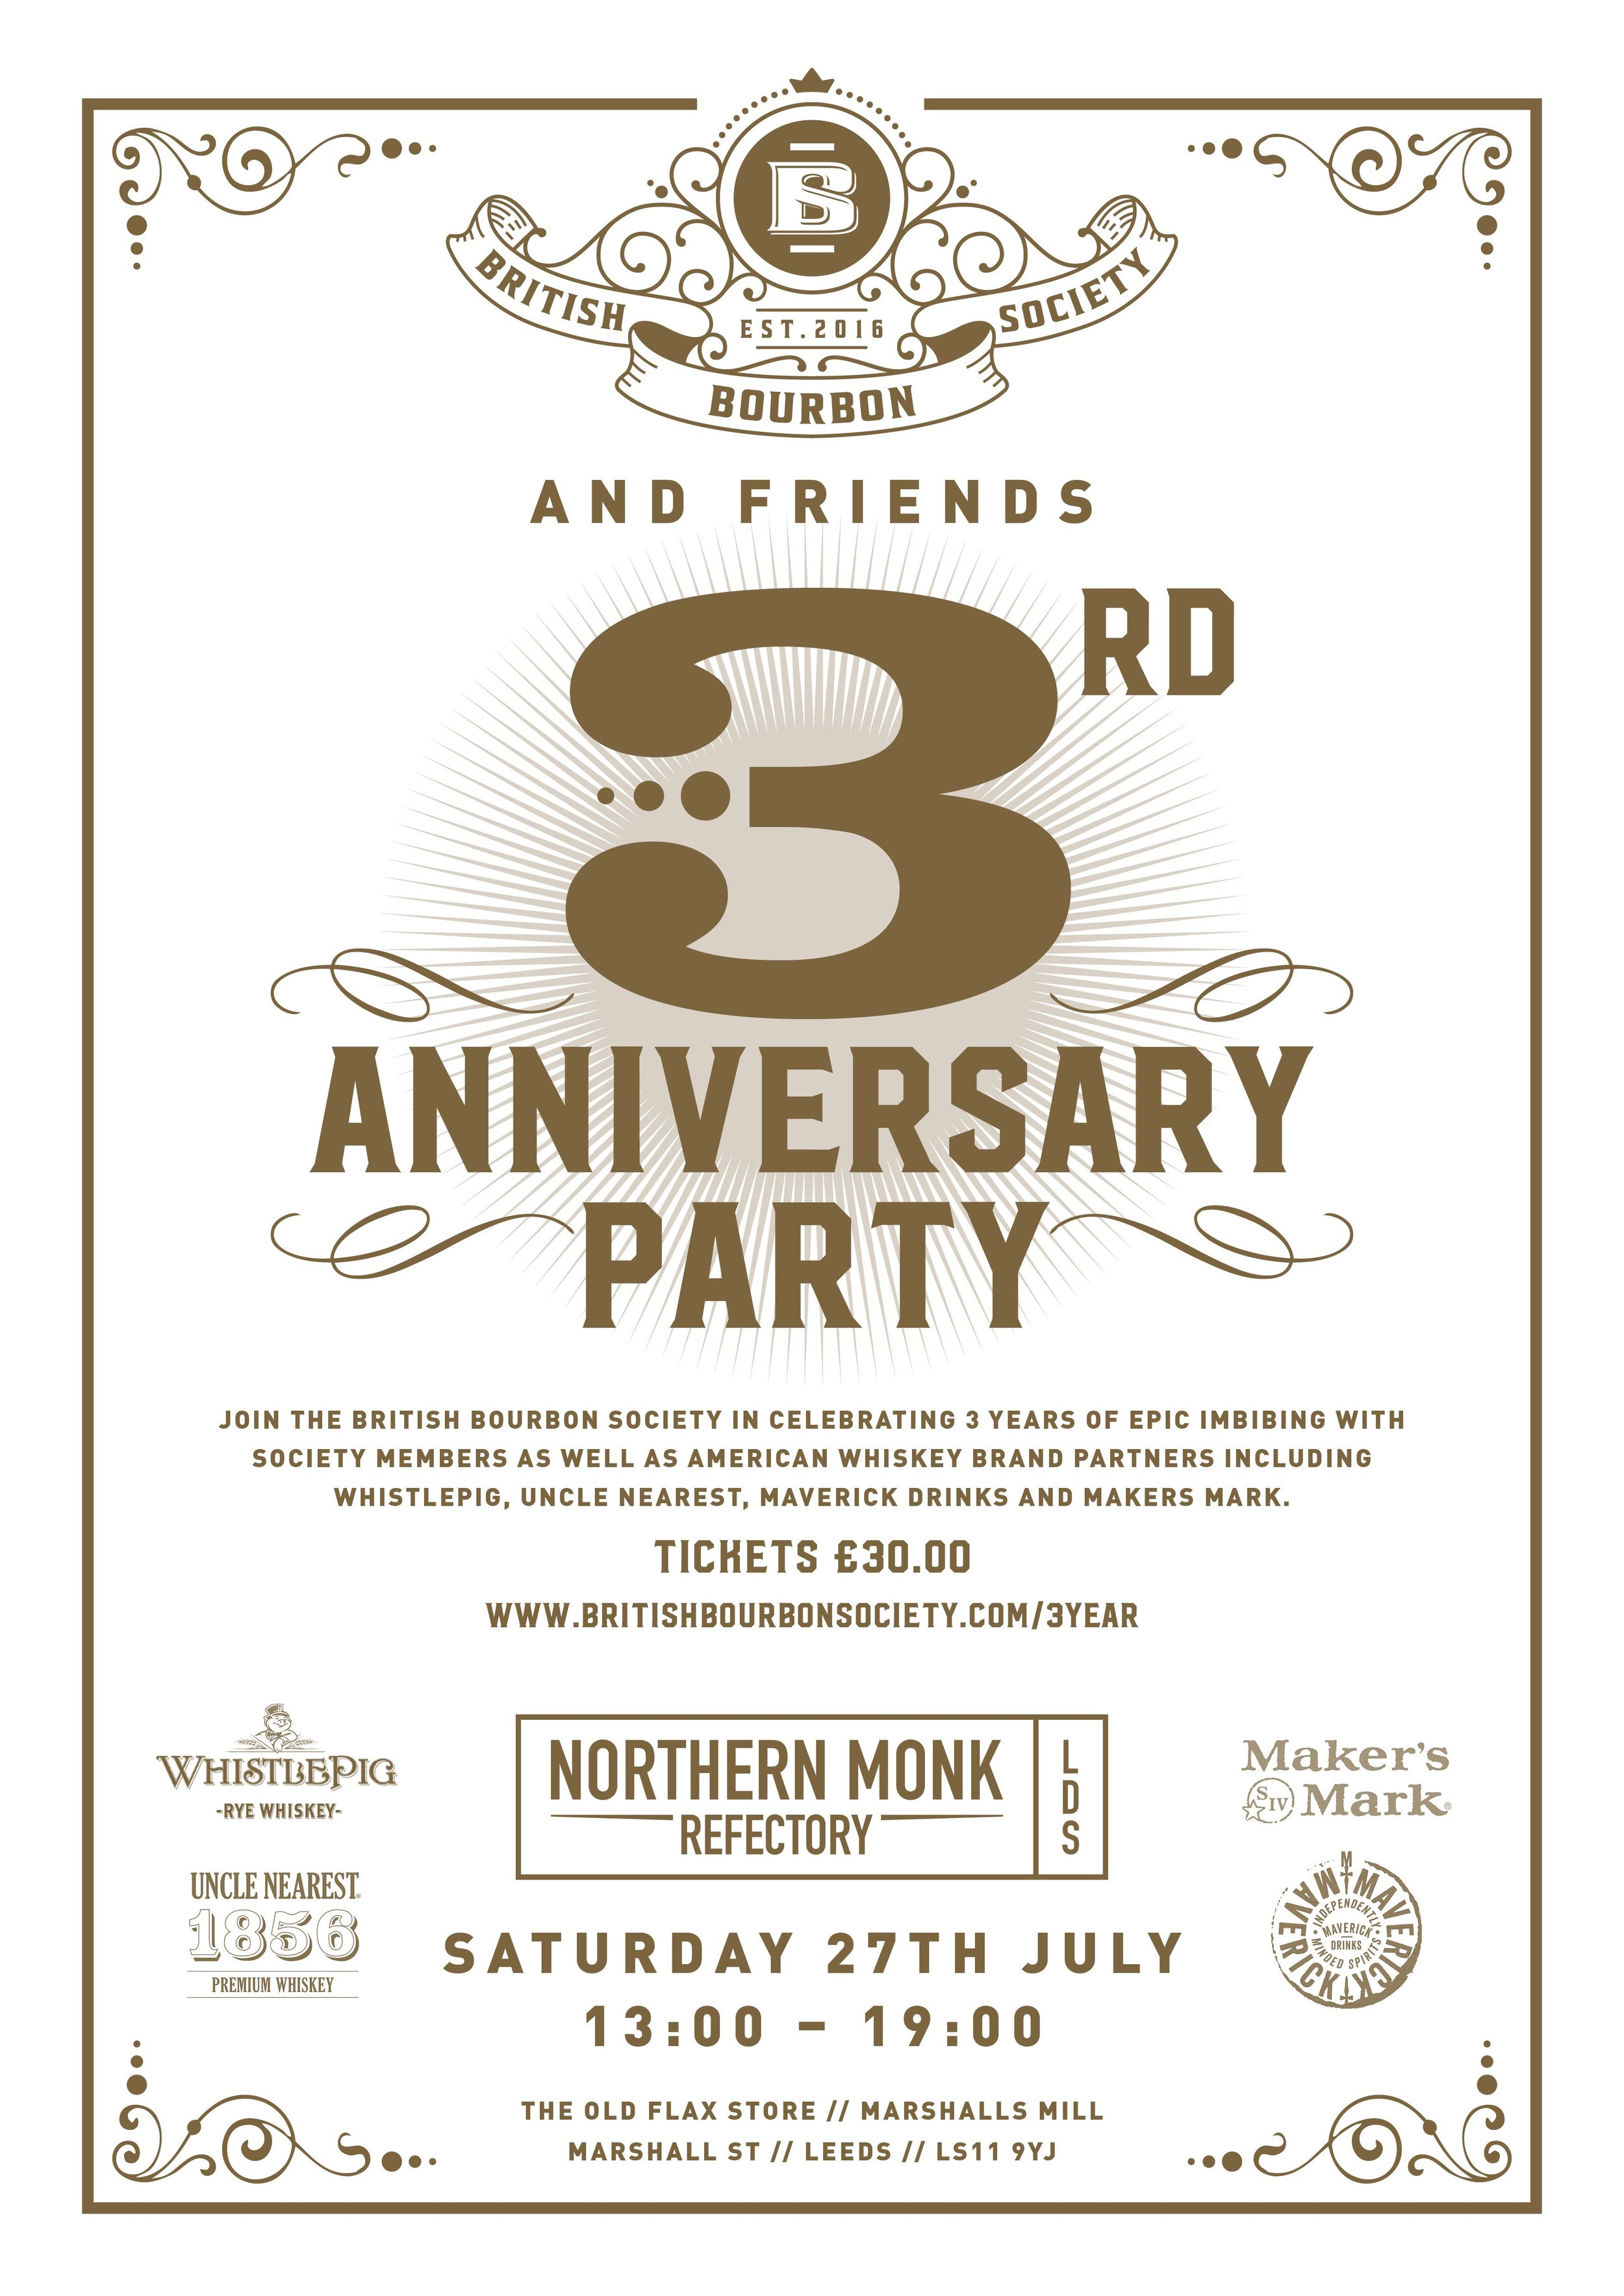 Northern Monk_Refectory LDSR_BBS & Friends, 3rd Anniversary Party_A3.jpg